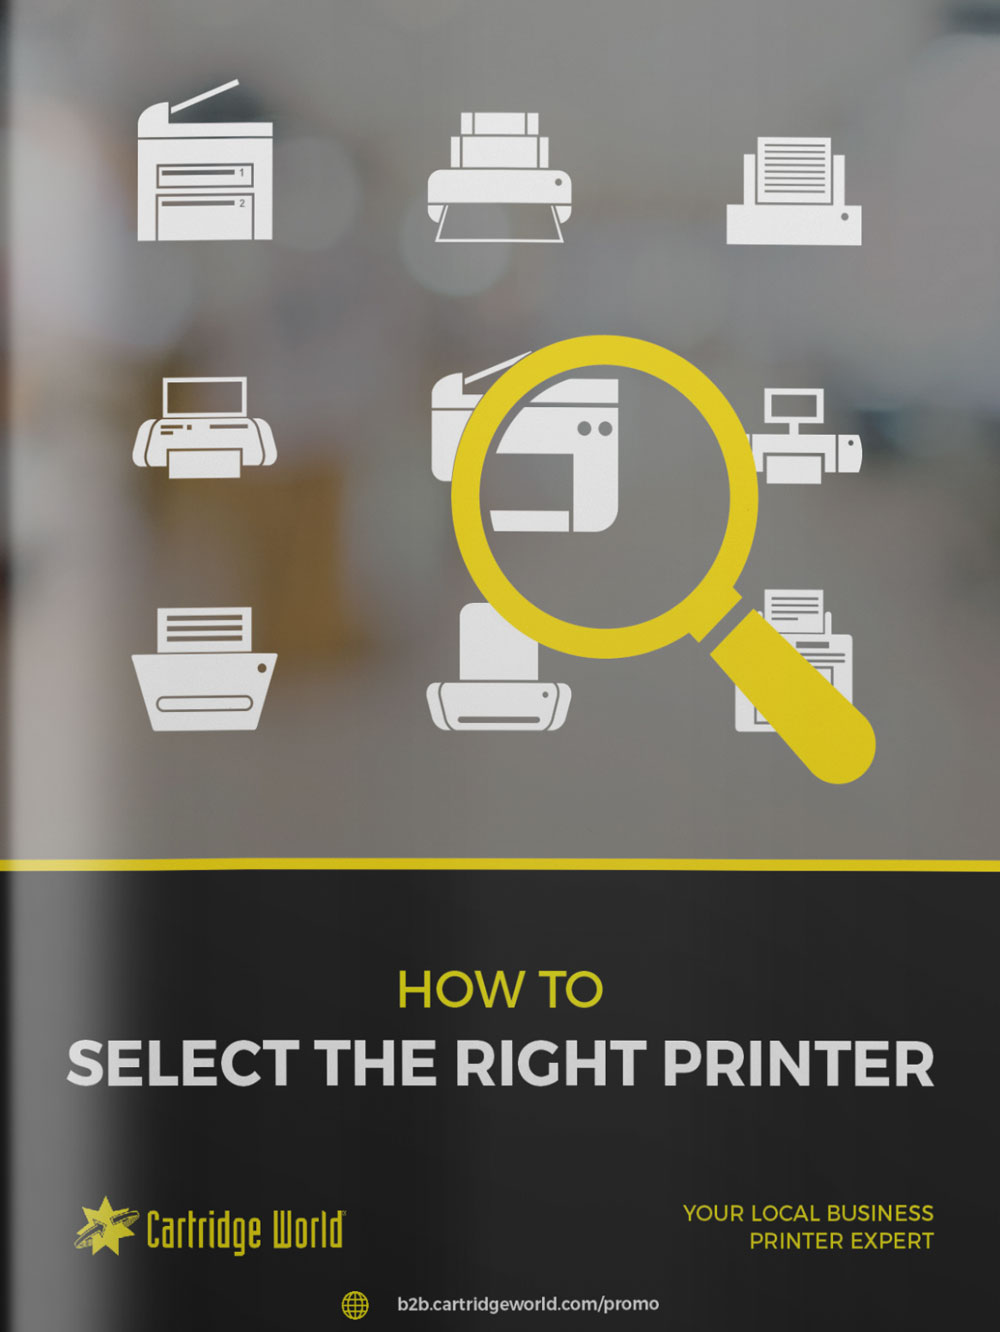 GUIDE TO SELECTING THE RIGHT PRINTER